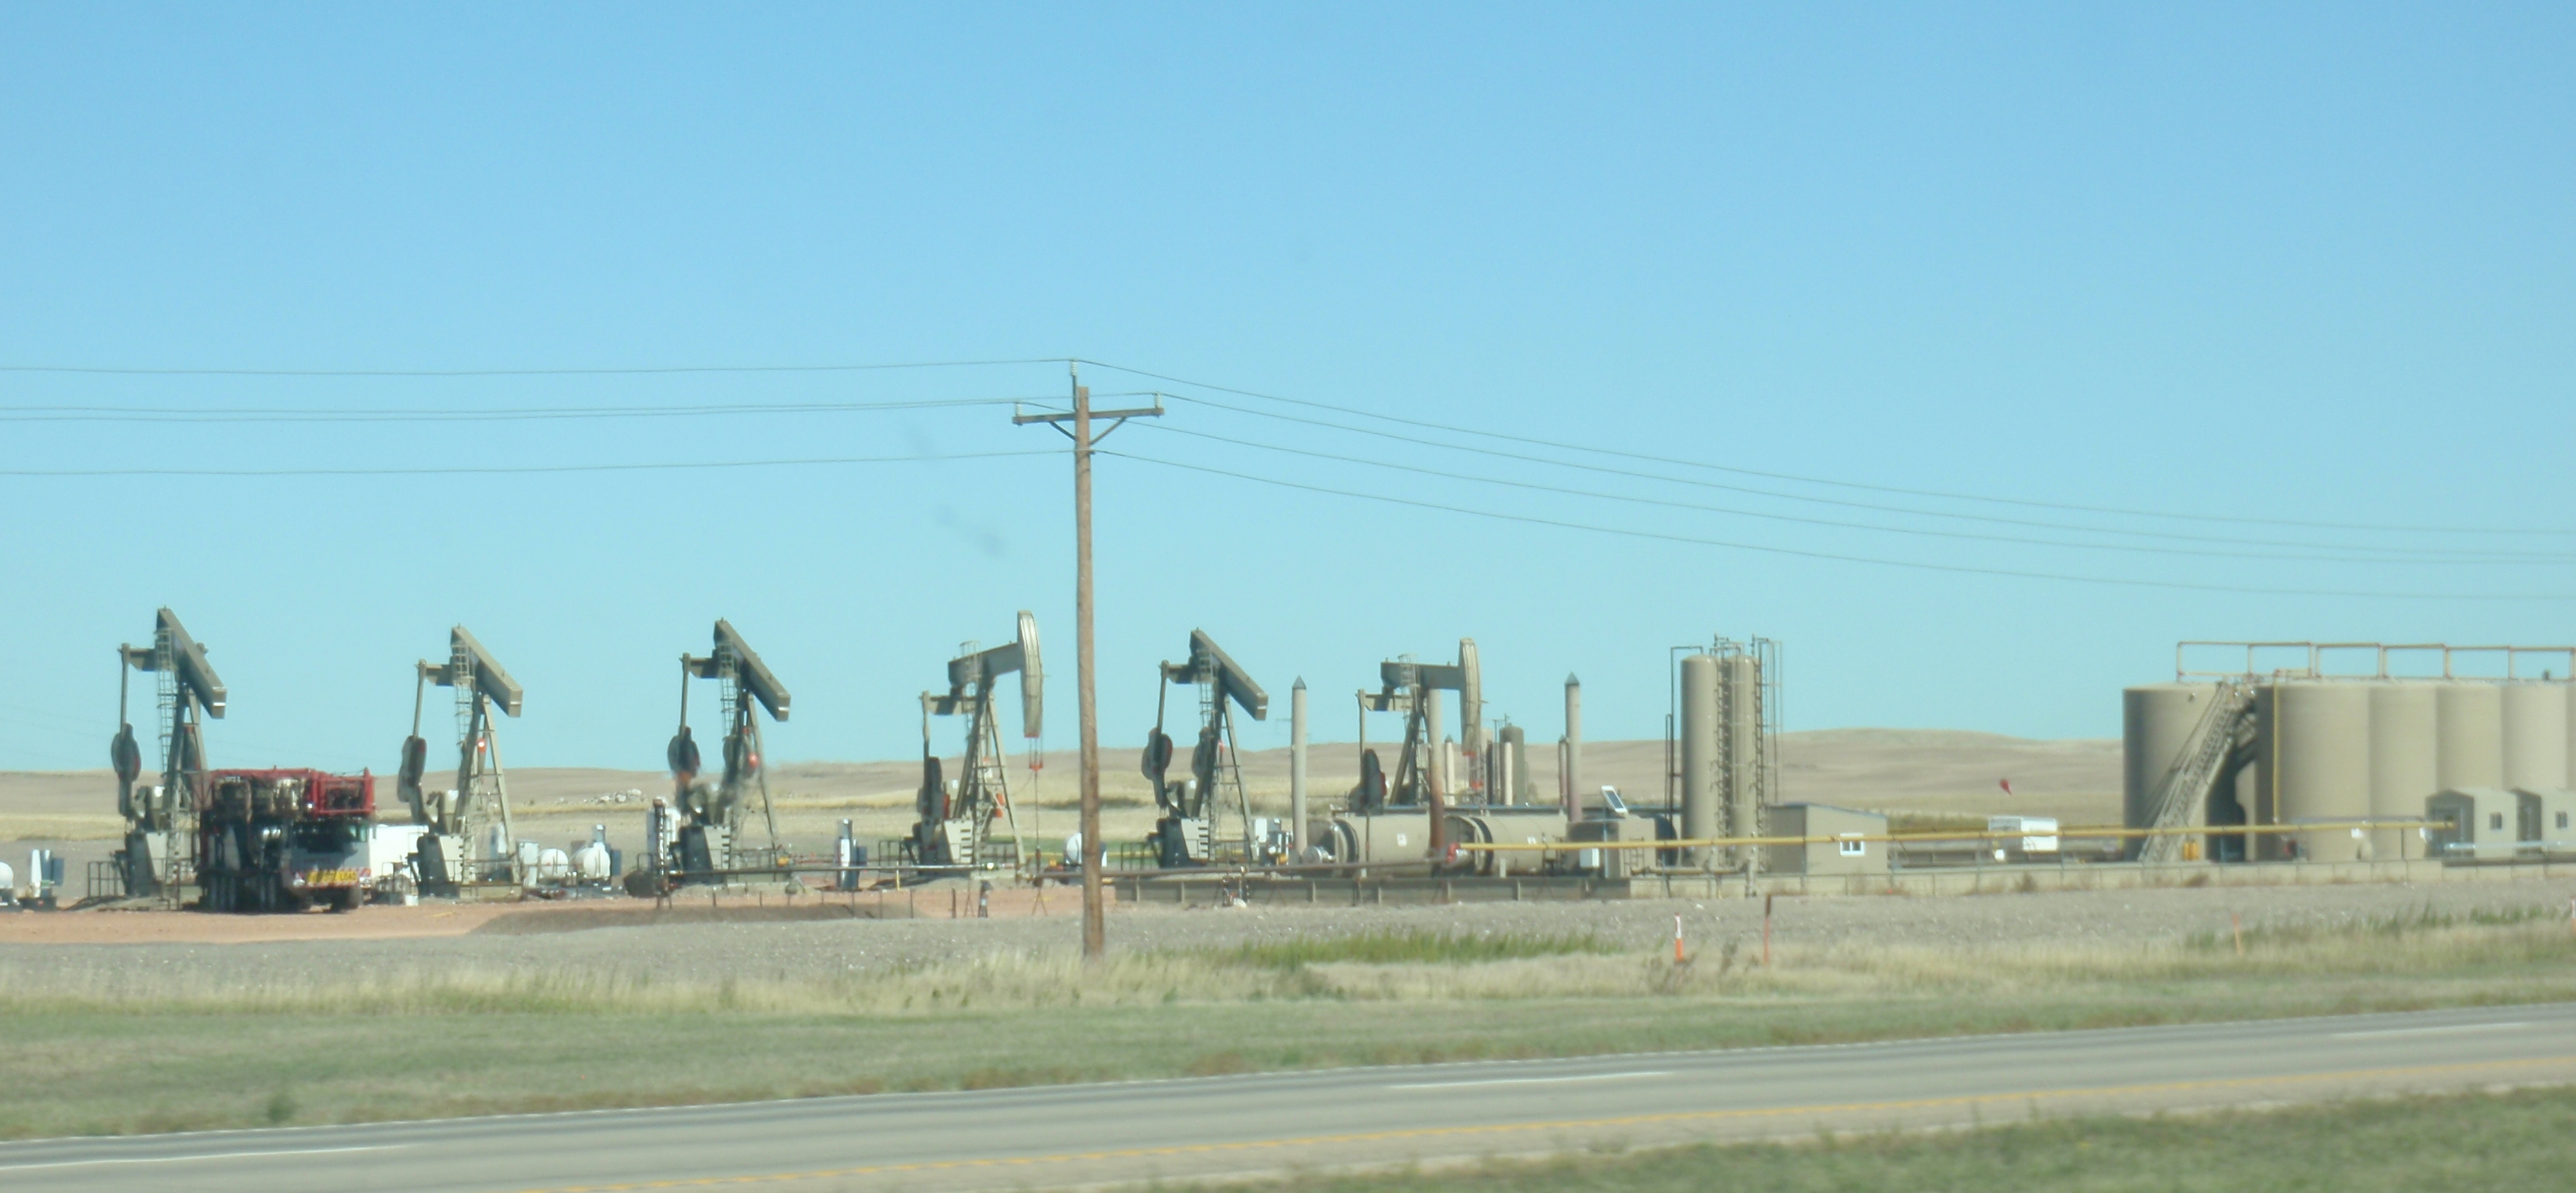 6 wells just about ready to start producing. Photo by James Ulvog.